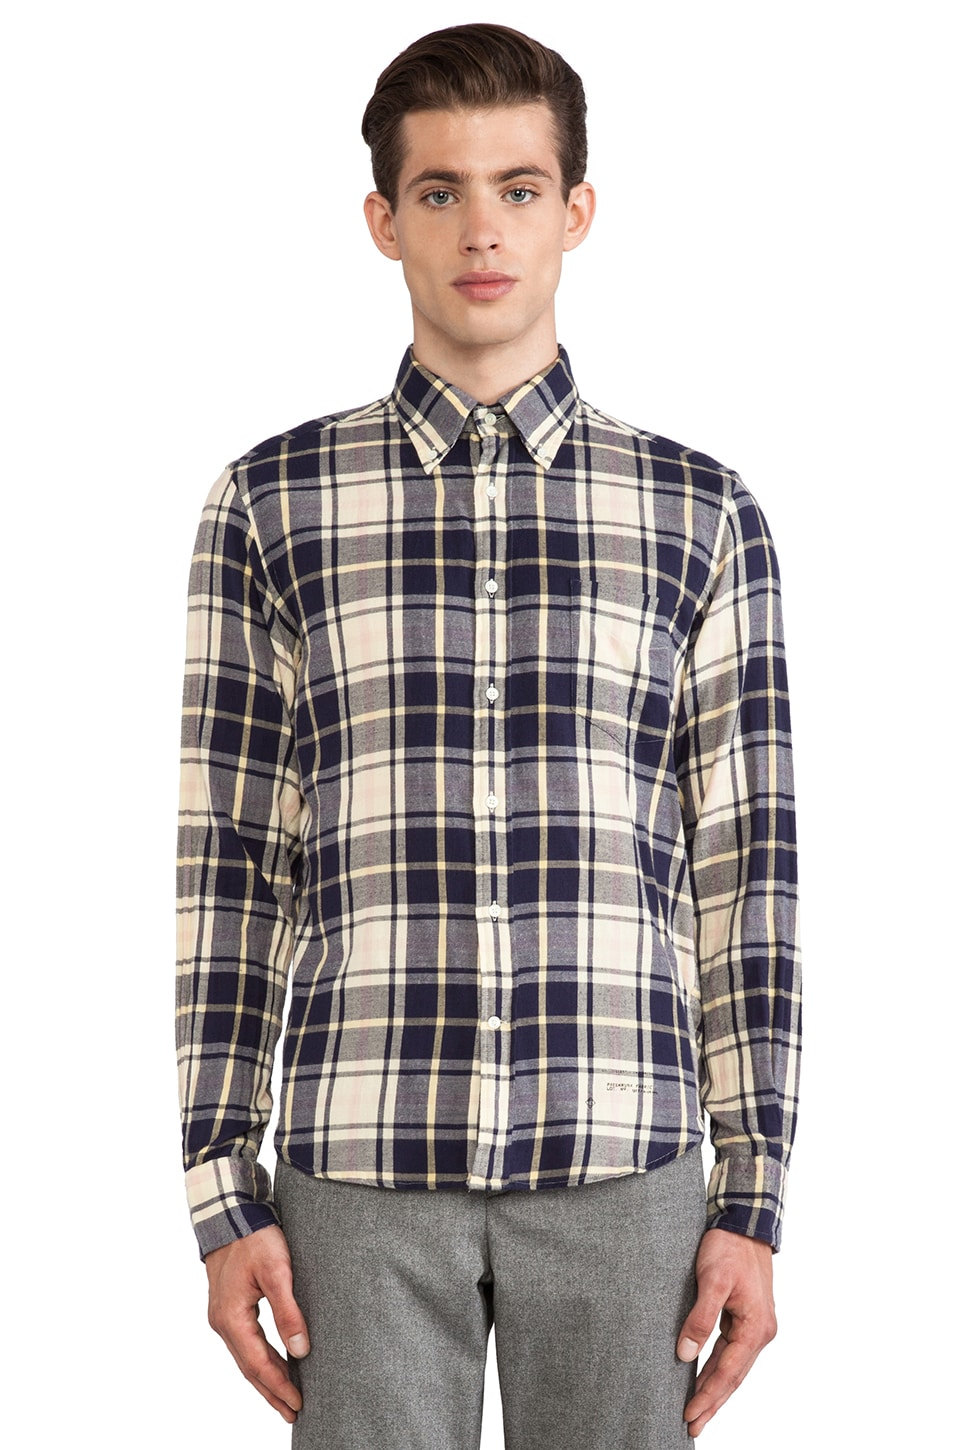 GANT Rugger Windblown Flannel in Navy & White